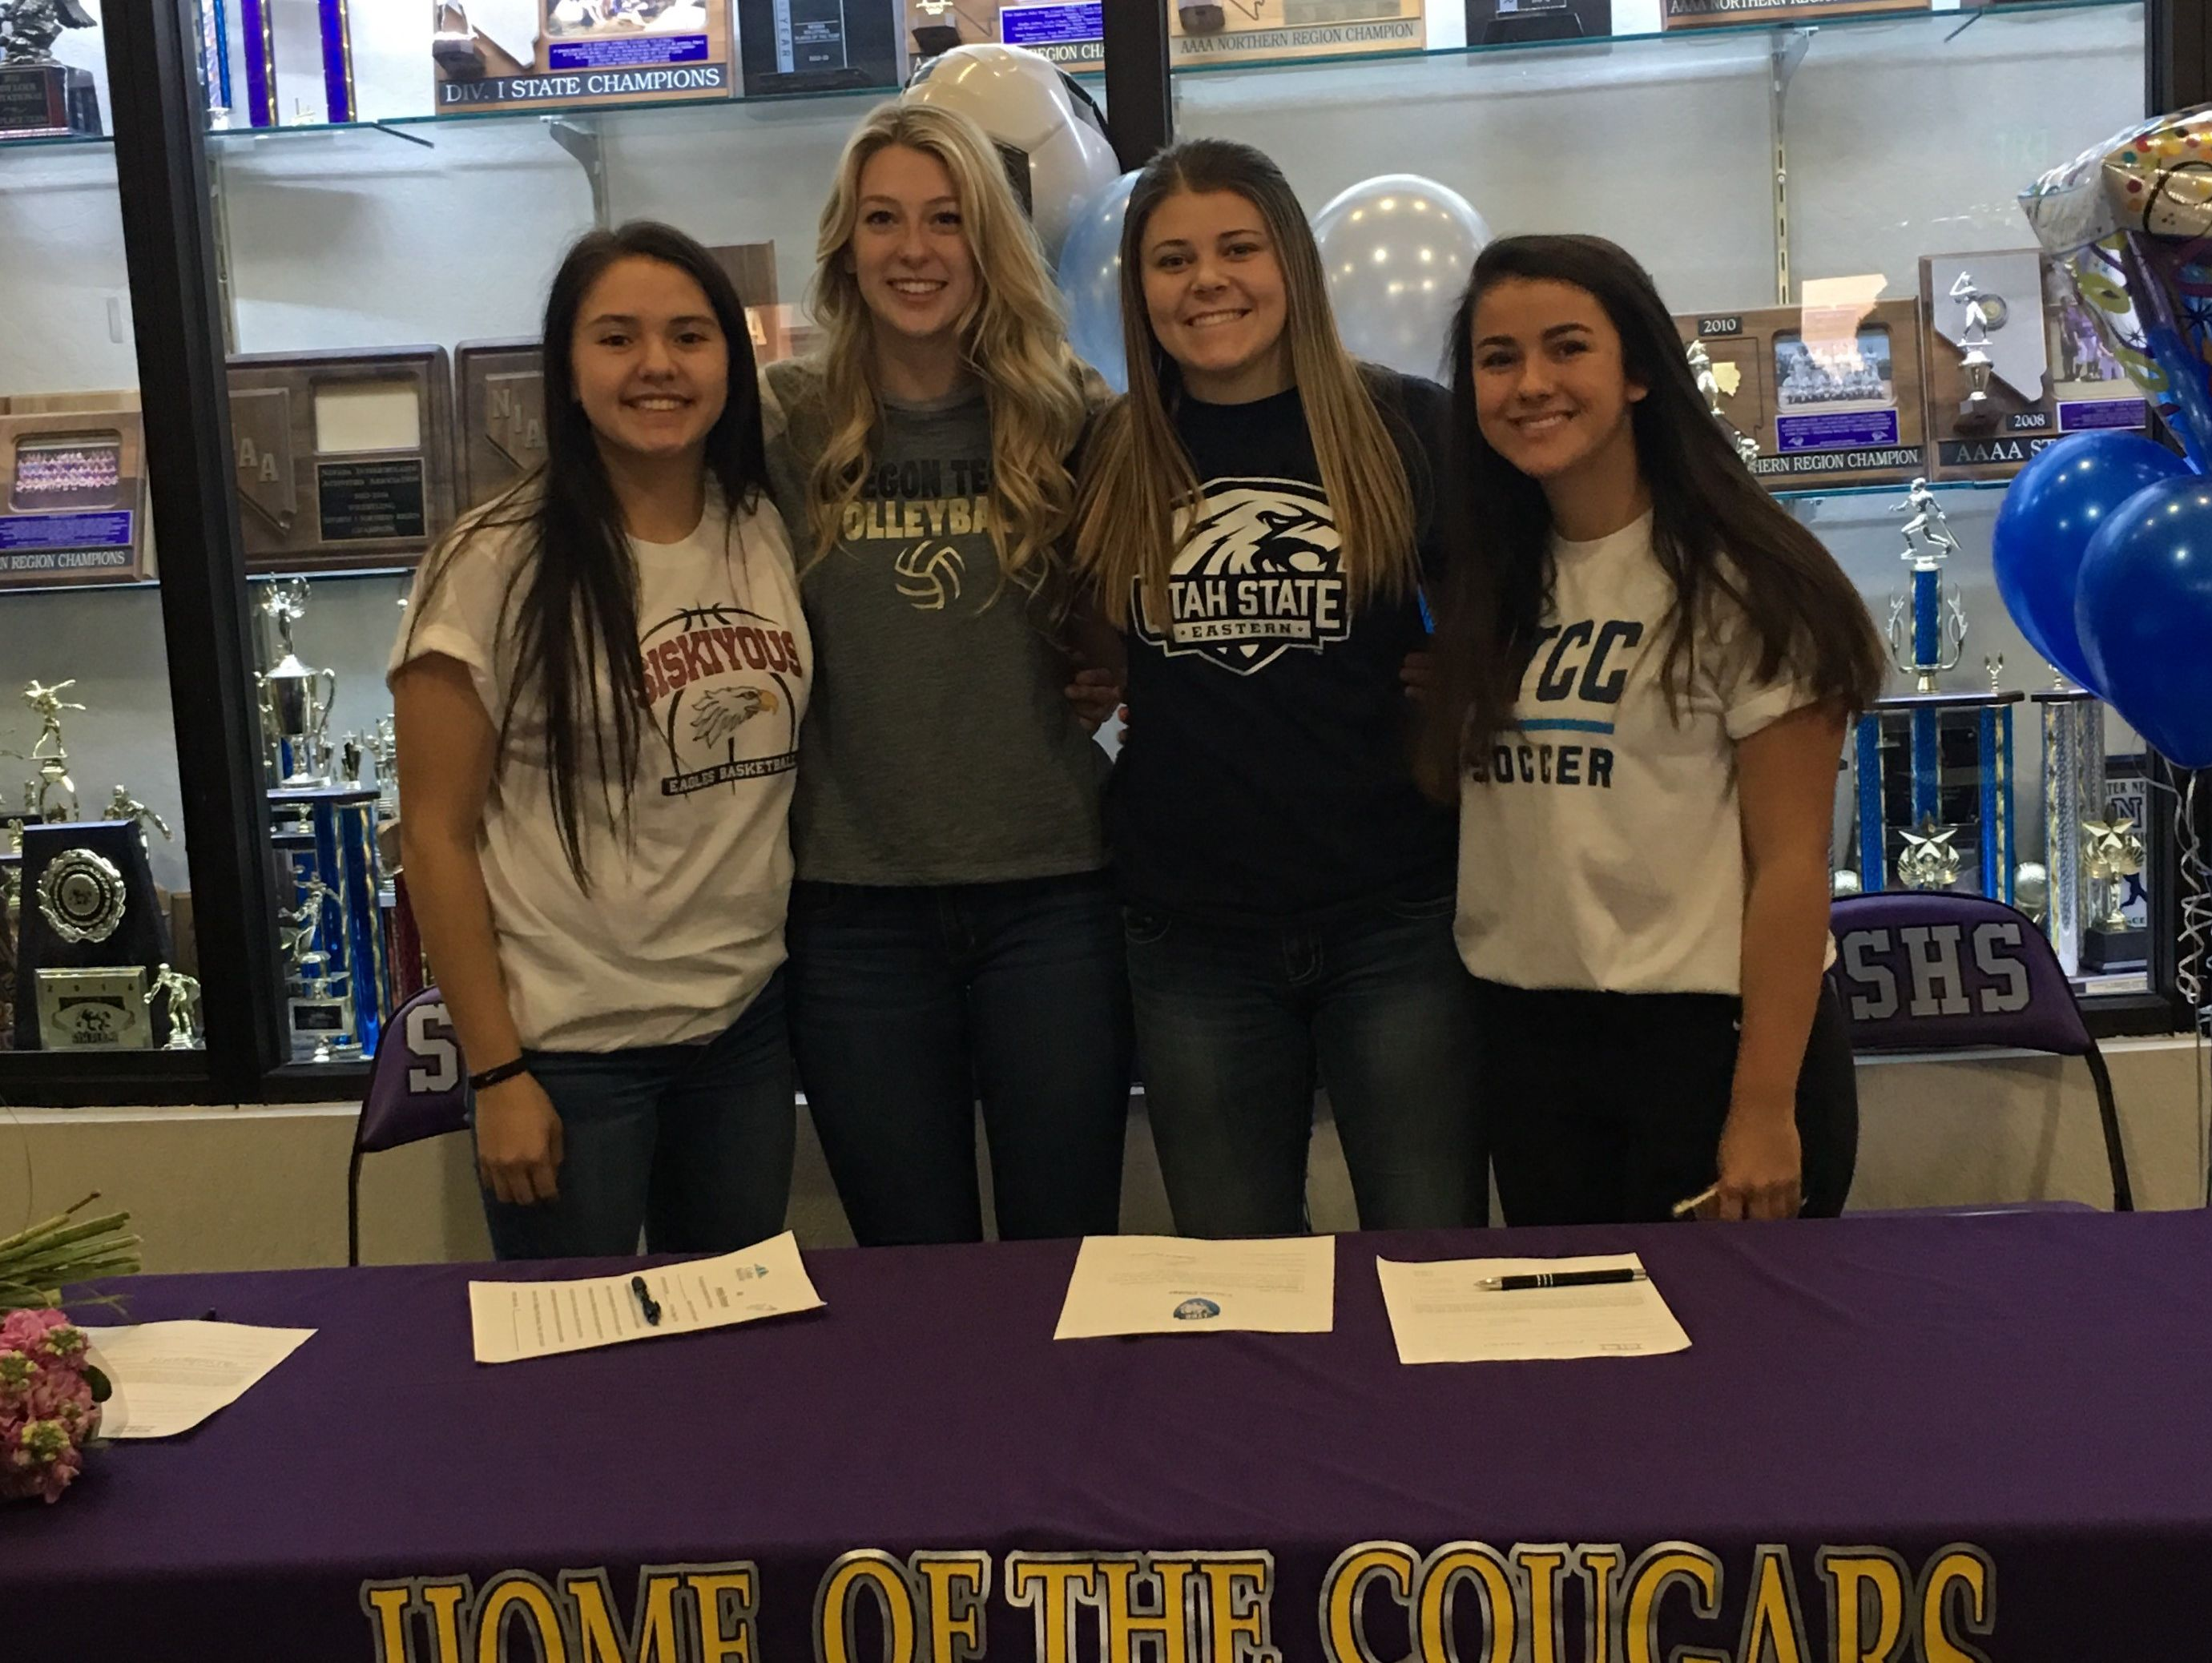 The Cougars had four students sign on Wednesday including Ireland Bennett (volleyball) Oregon Tech; Kalli Prendergast (soccer) Eastern Utah State; Anhelica Shanrock (basketball) College of the Siskiyous; and Madison Escolar (soccer) Lake Tahoe Community College.